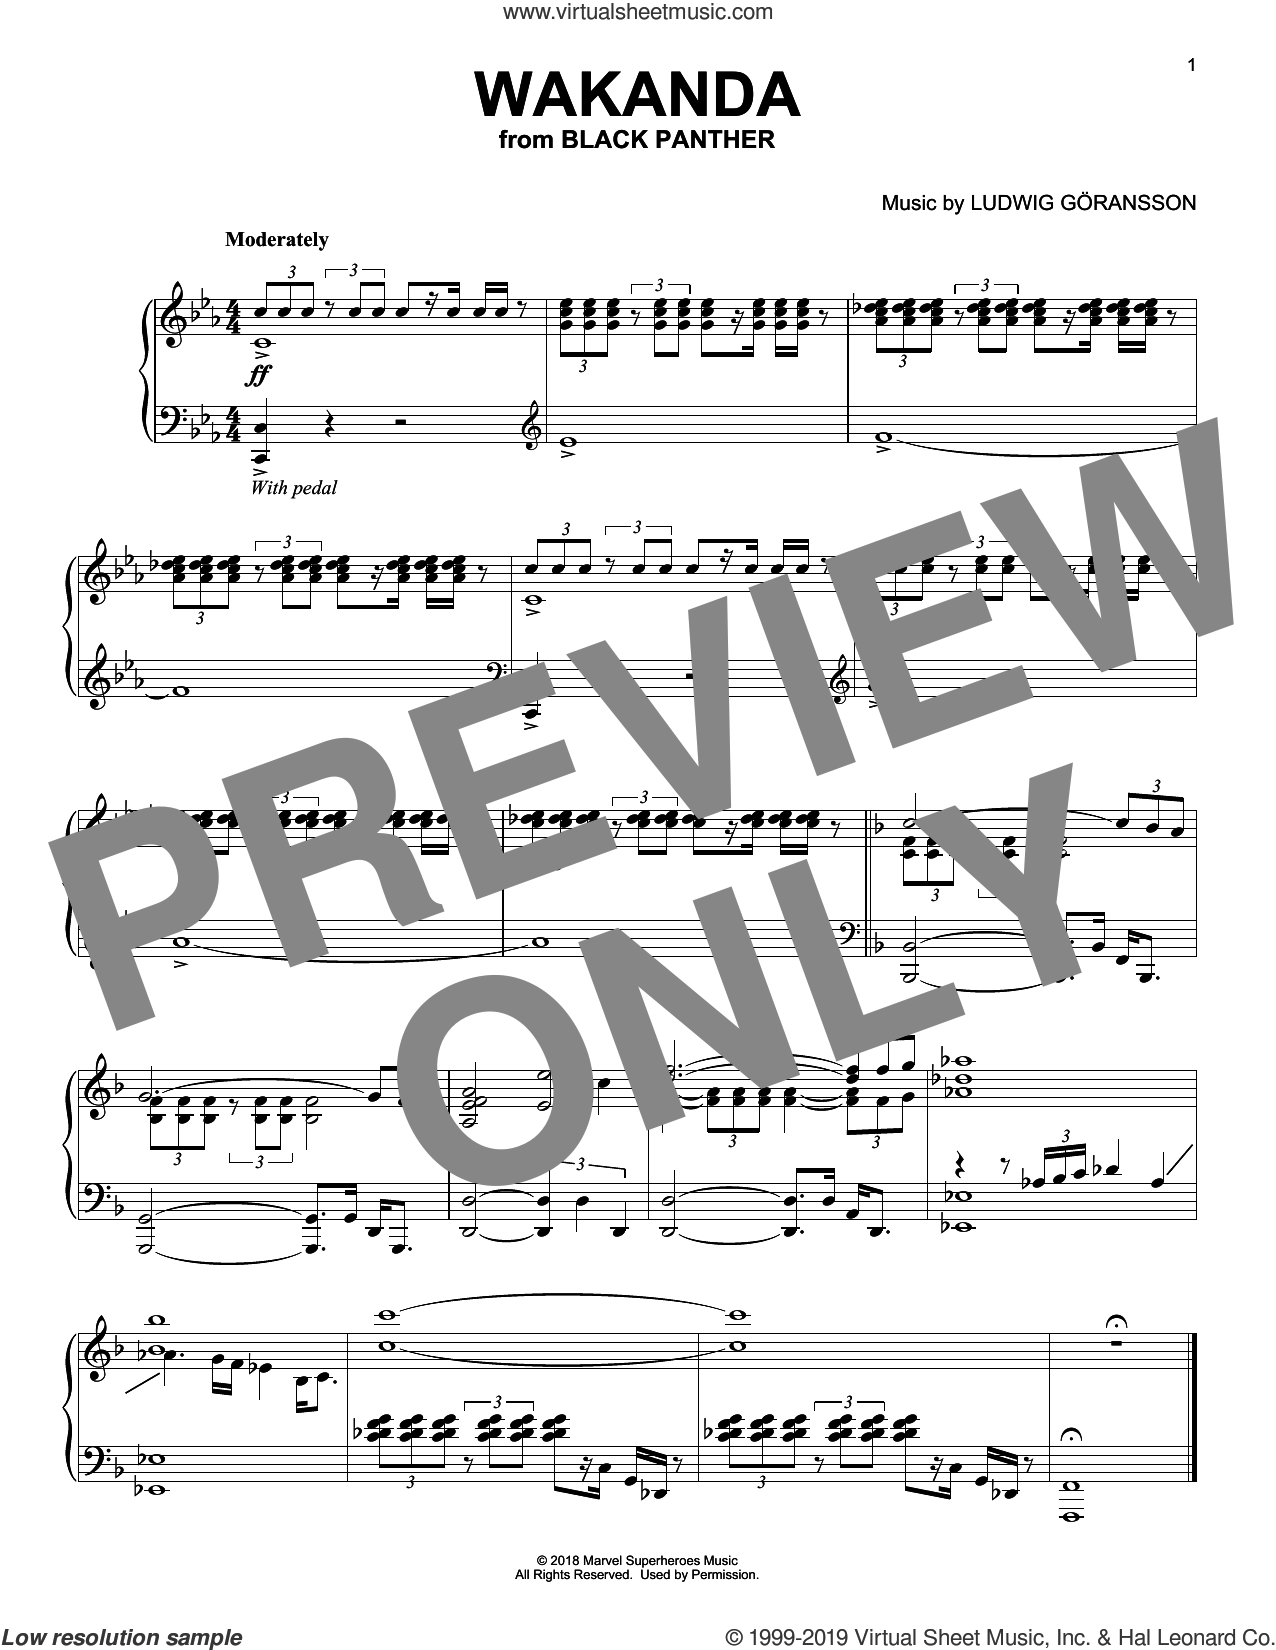 Wakanda (from Black Panther) sheet music for piano solo by Ludwig Goransson, intermediate skill level